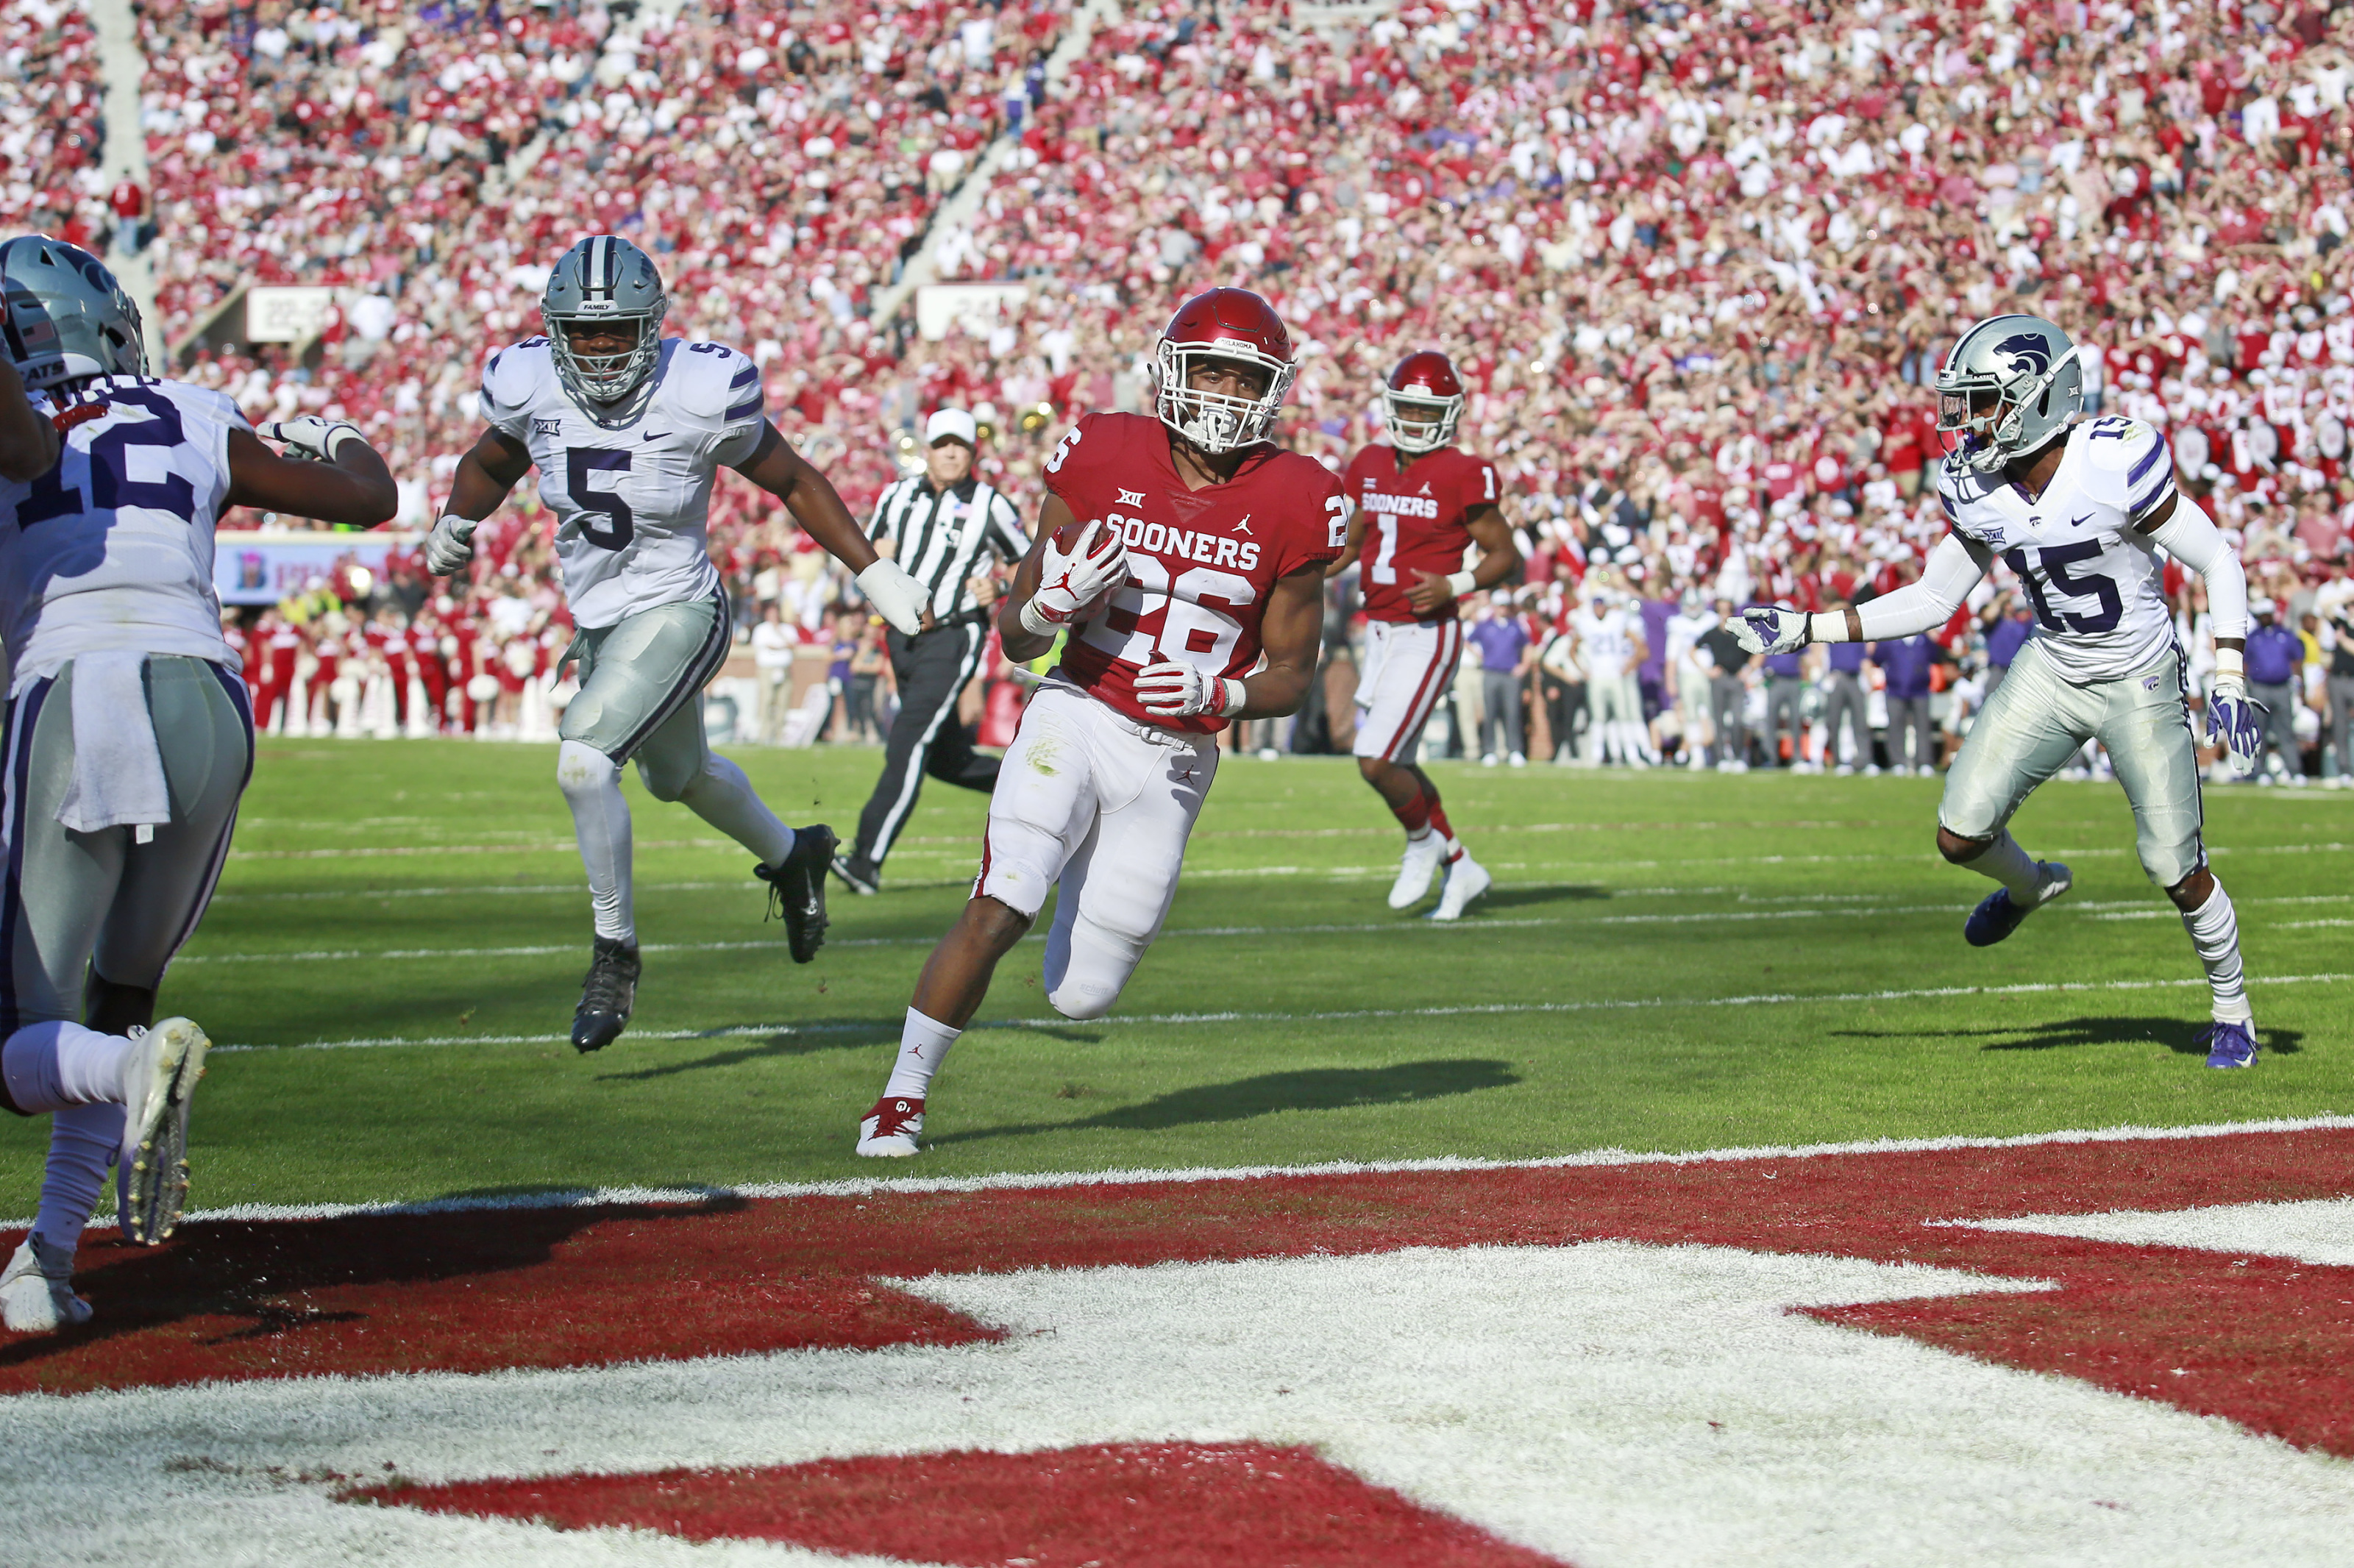 Oklahoma football: Sooner RB situation goes from fretful to fruitful